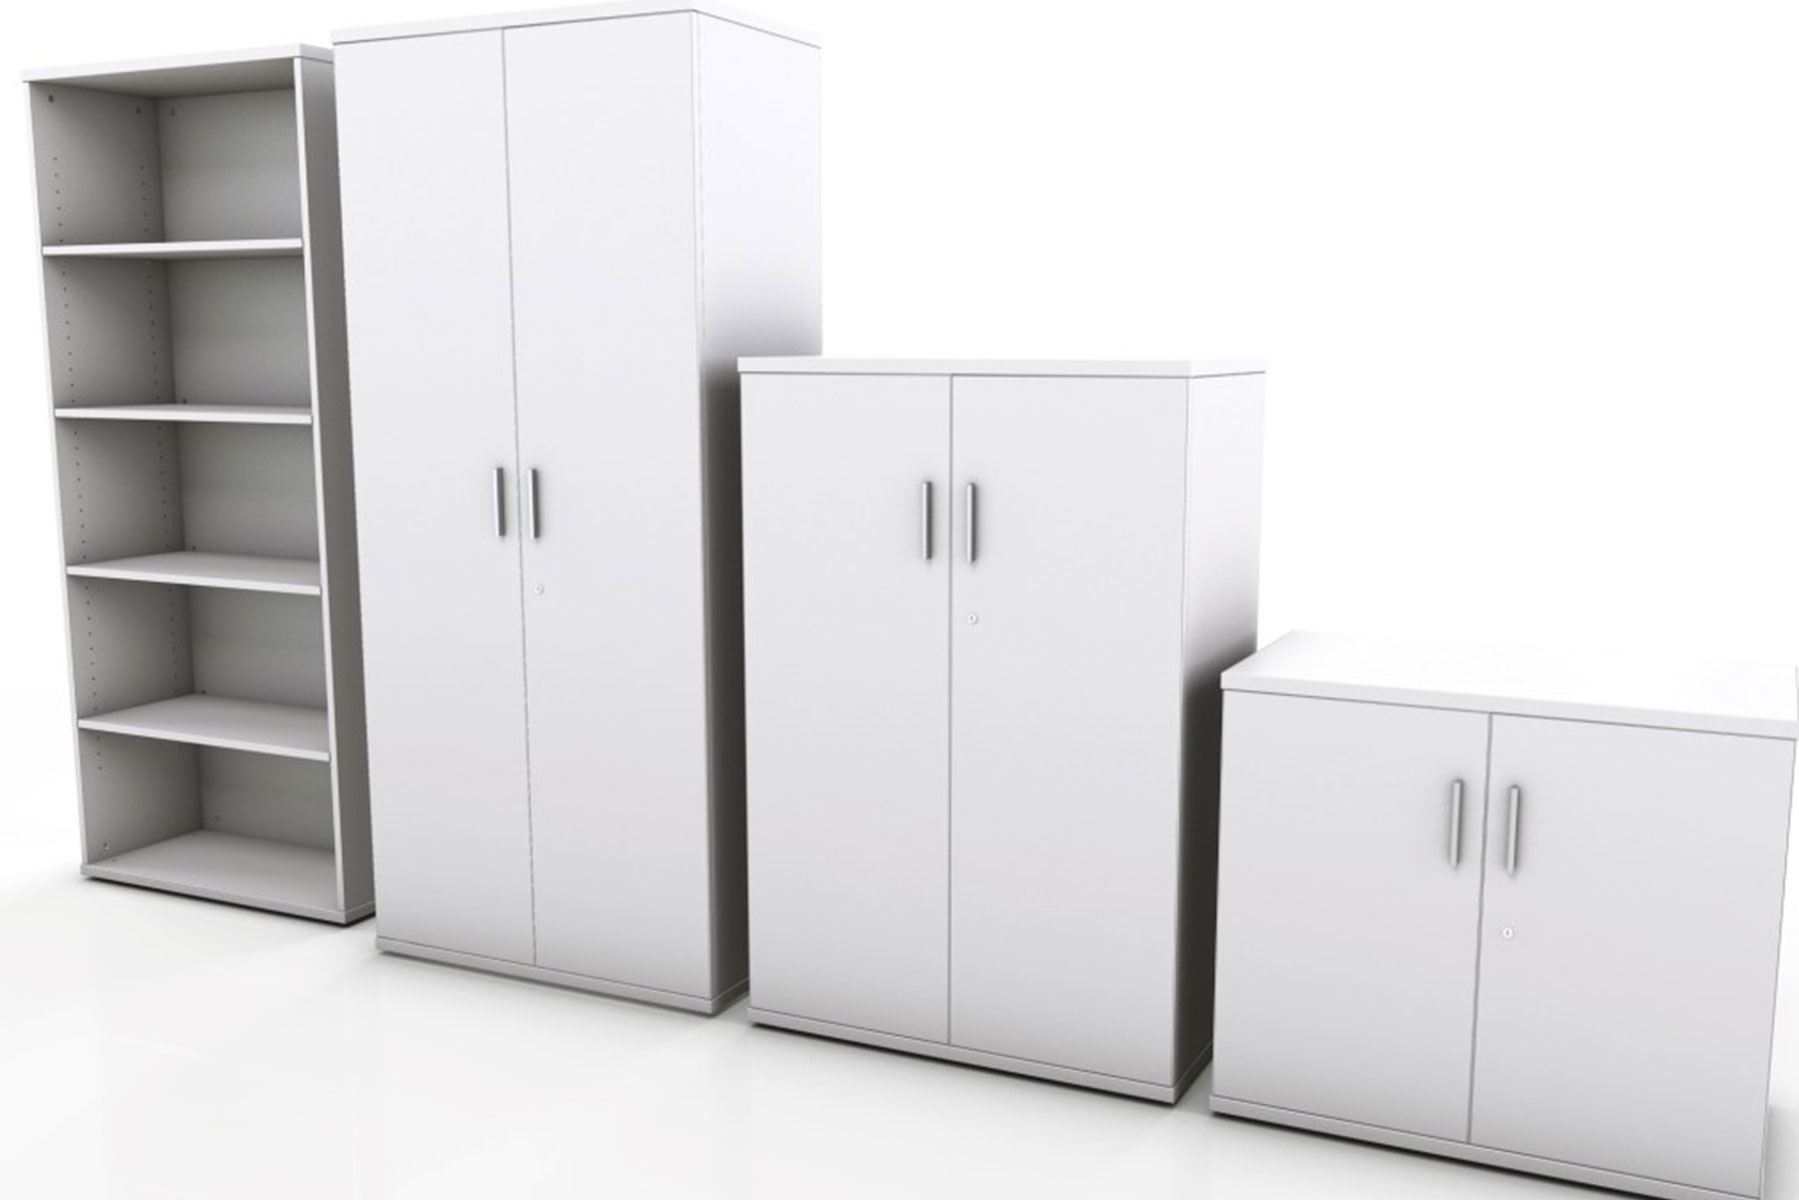 files-and-storage-talimar-systems